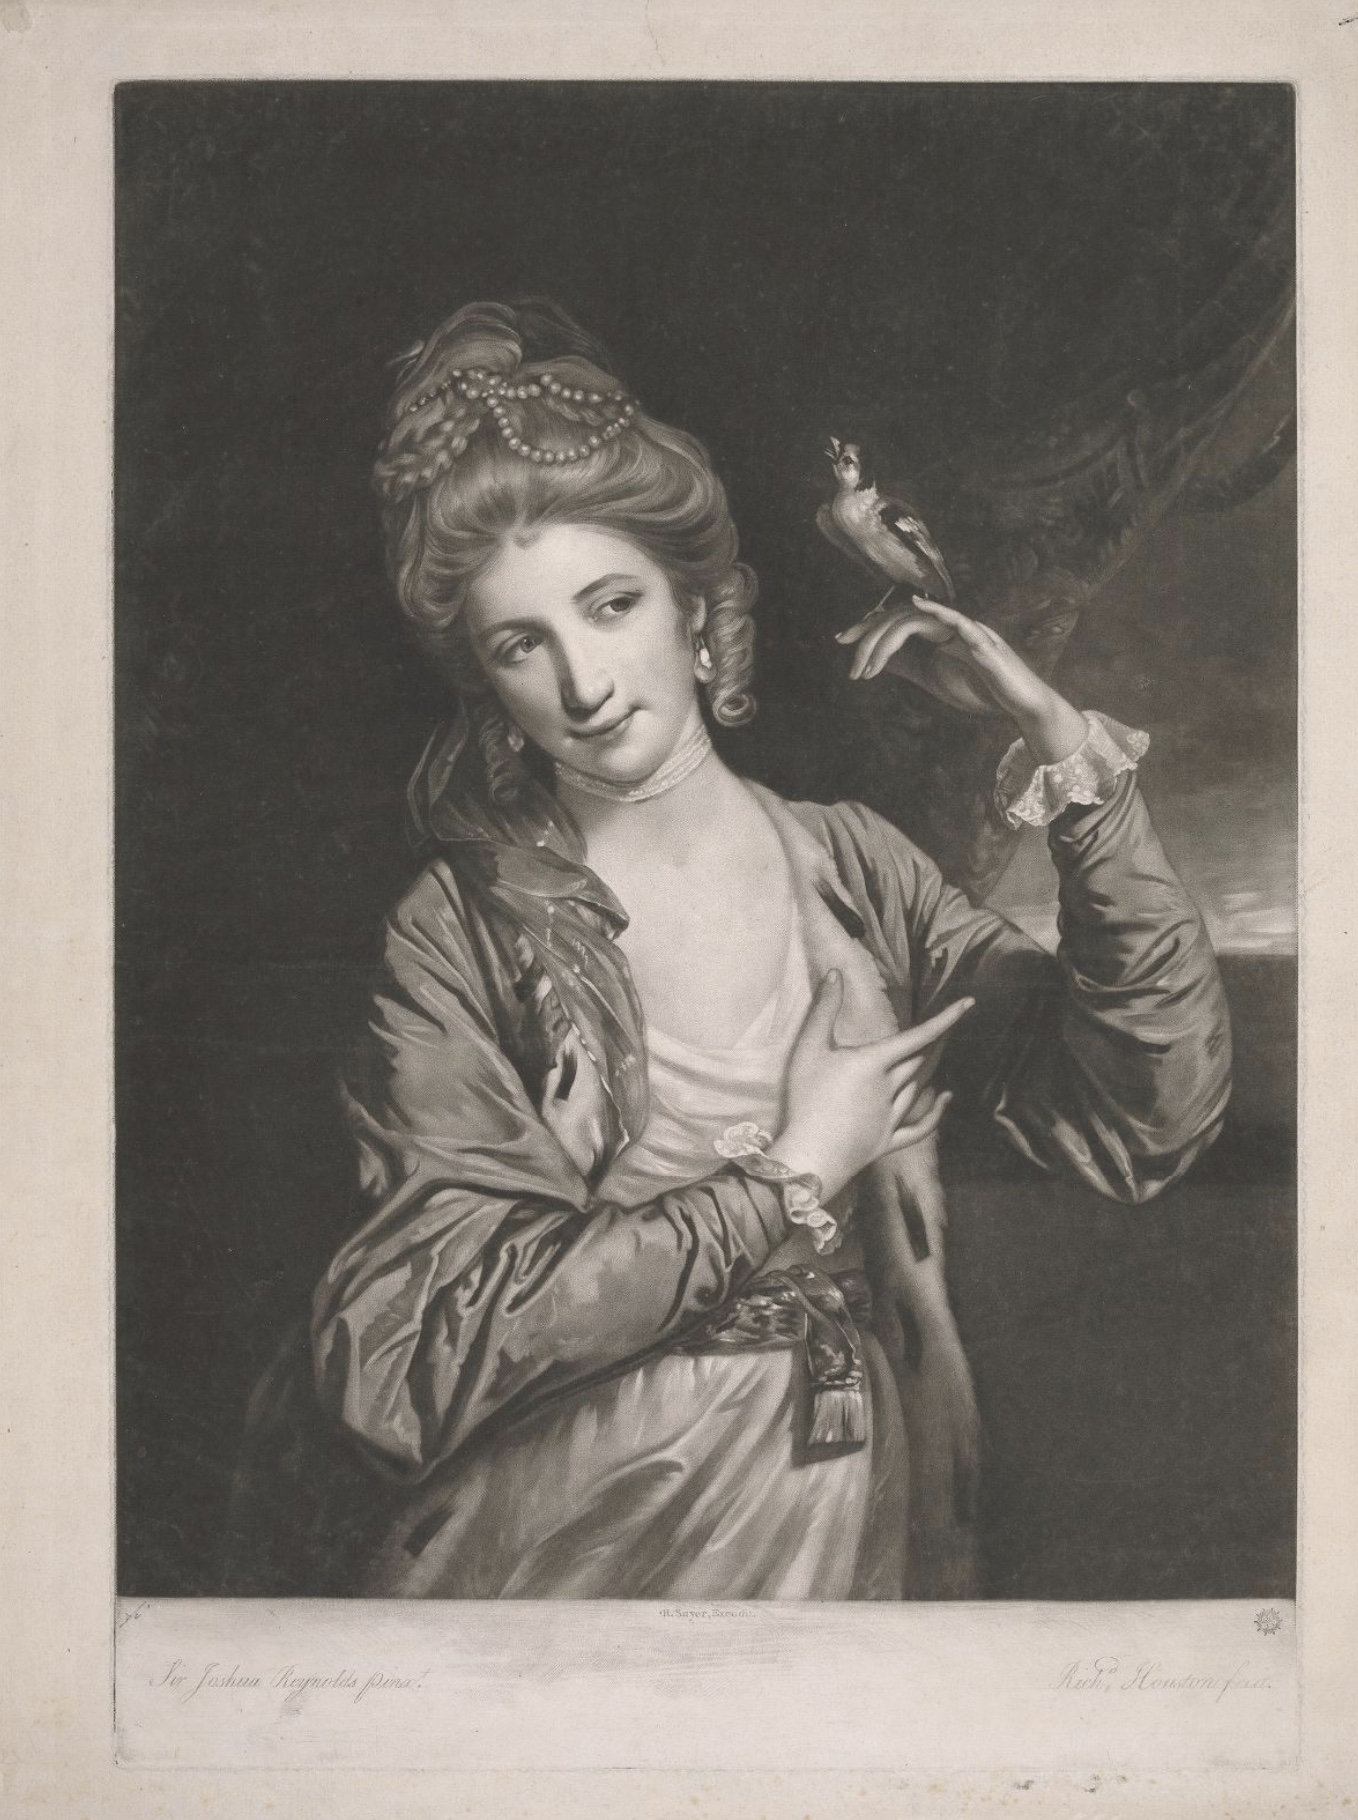 6 The courtesan Harriet Powell (later Countess of Seaforth) as Leonora in the Padlock.